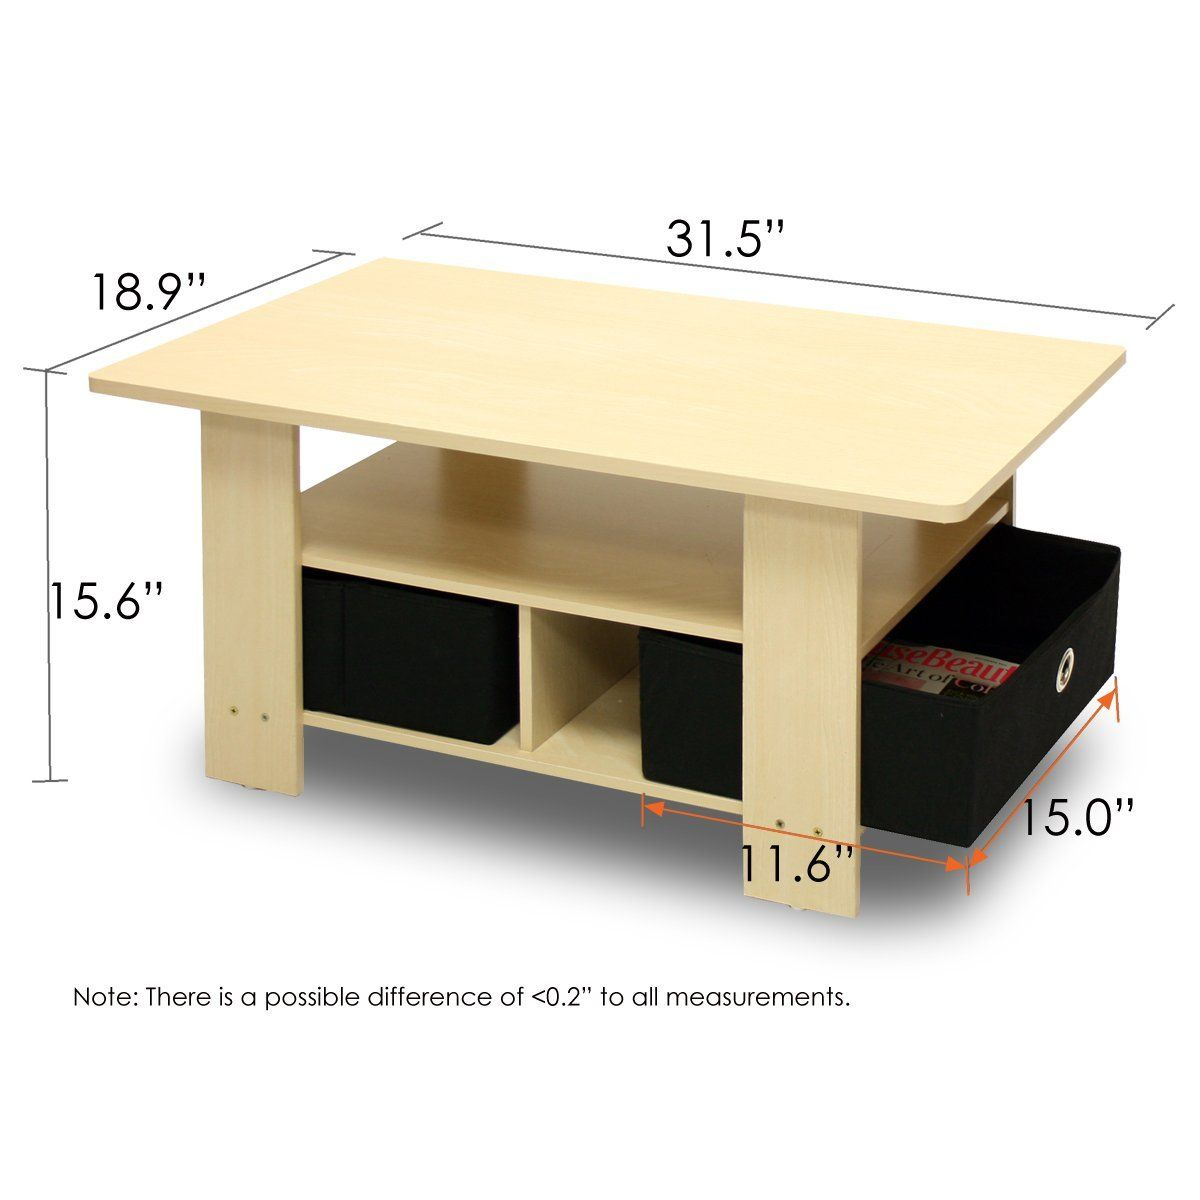 title | Standard Height For Coffee Table